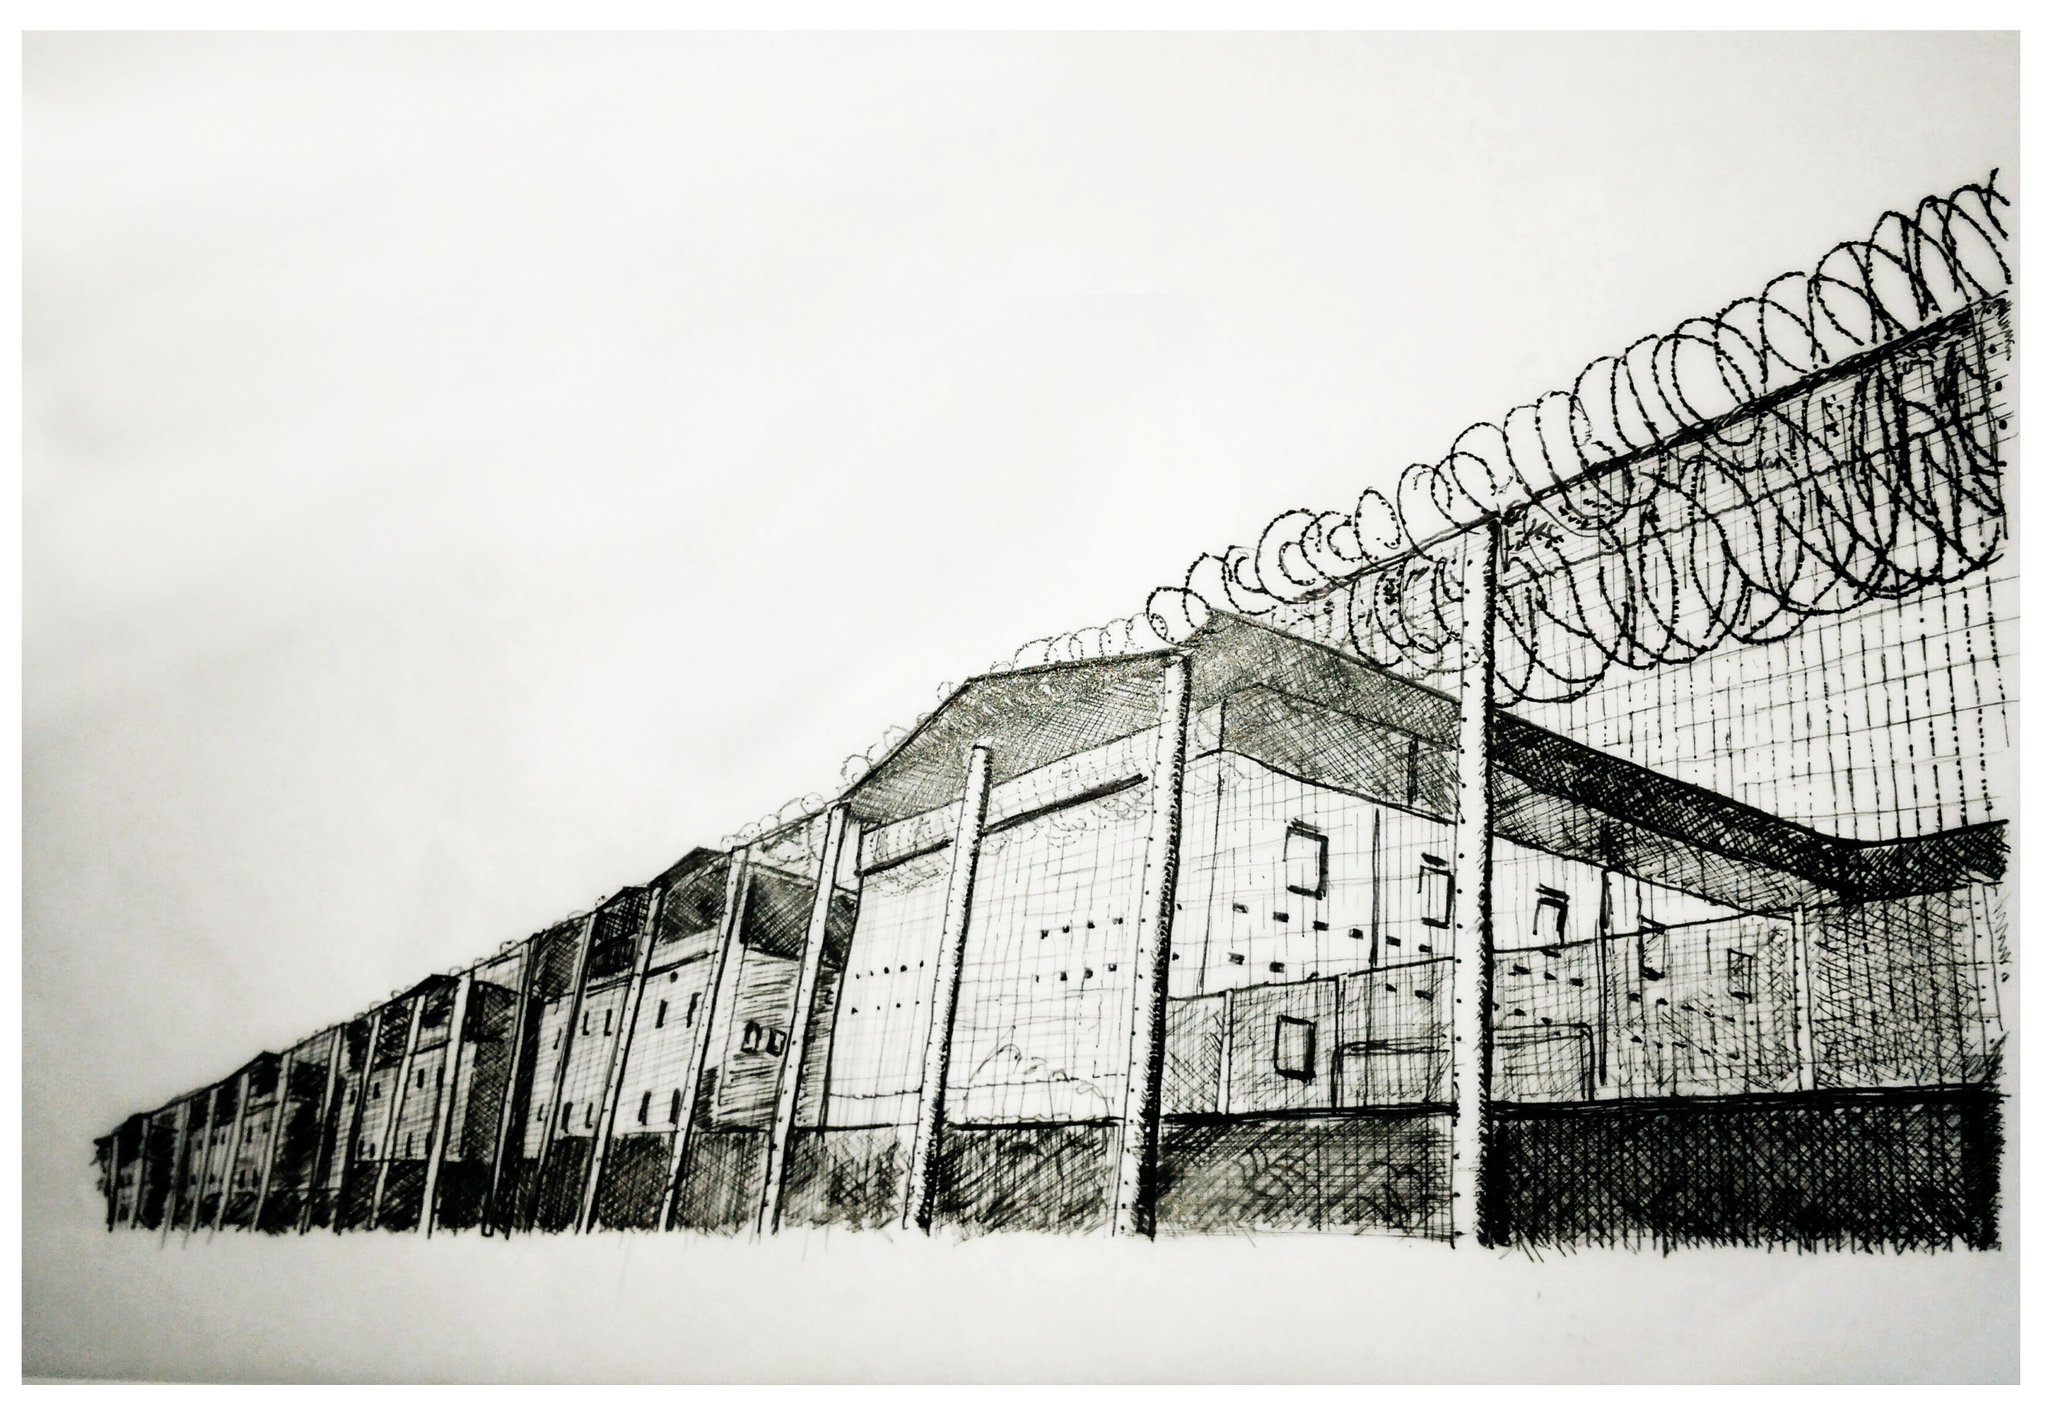 Ask your MP to attend #detentiondebate on Tuesday. Detention is one of gravest civil liberties issues in UK today https://t.co/wbNQoLoZQs https://t.co/W9NpcTrCl9